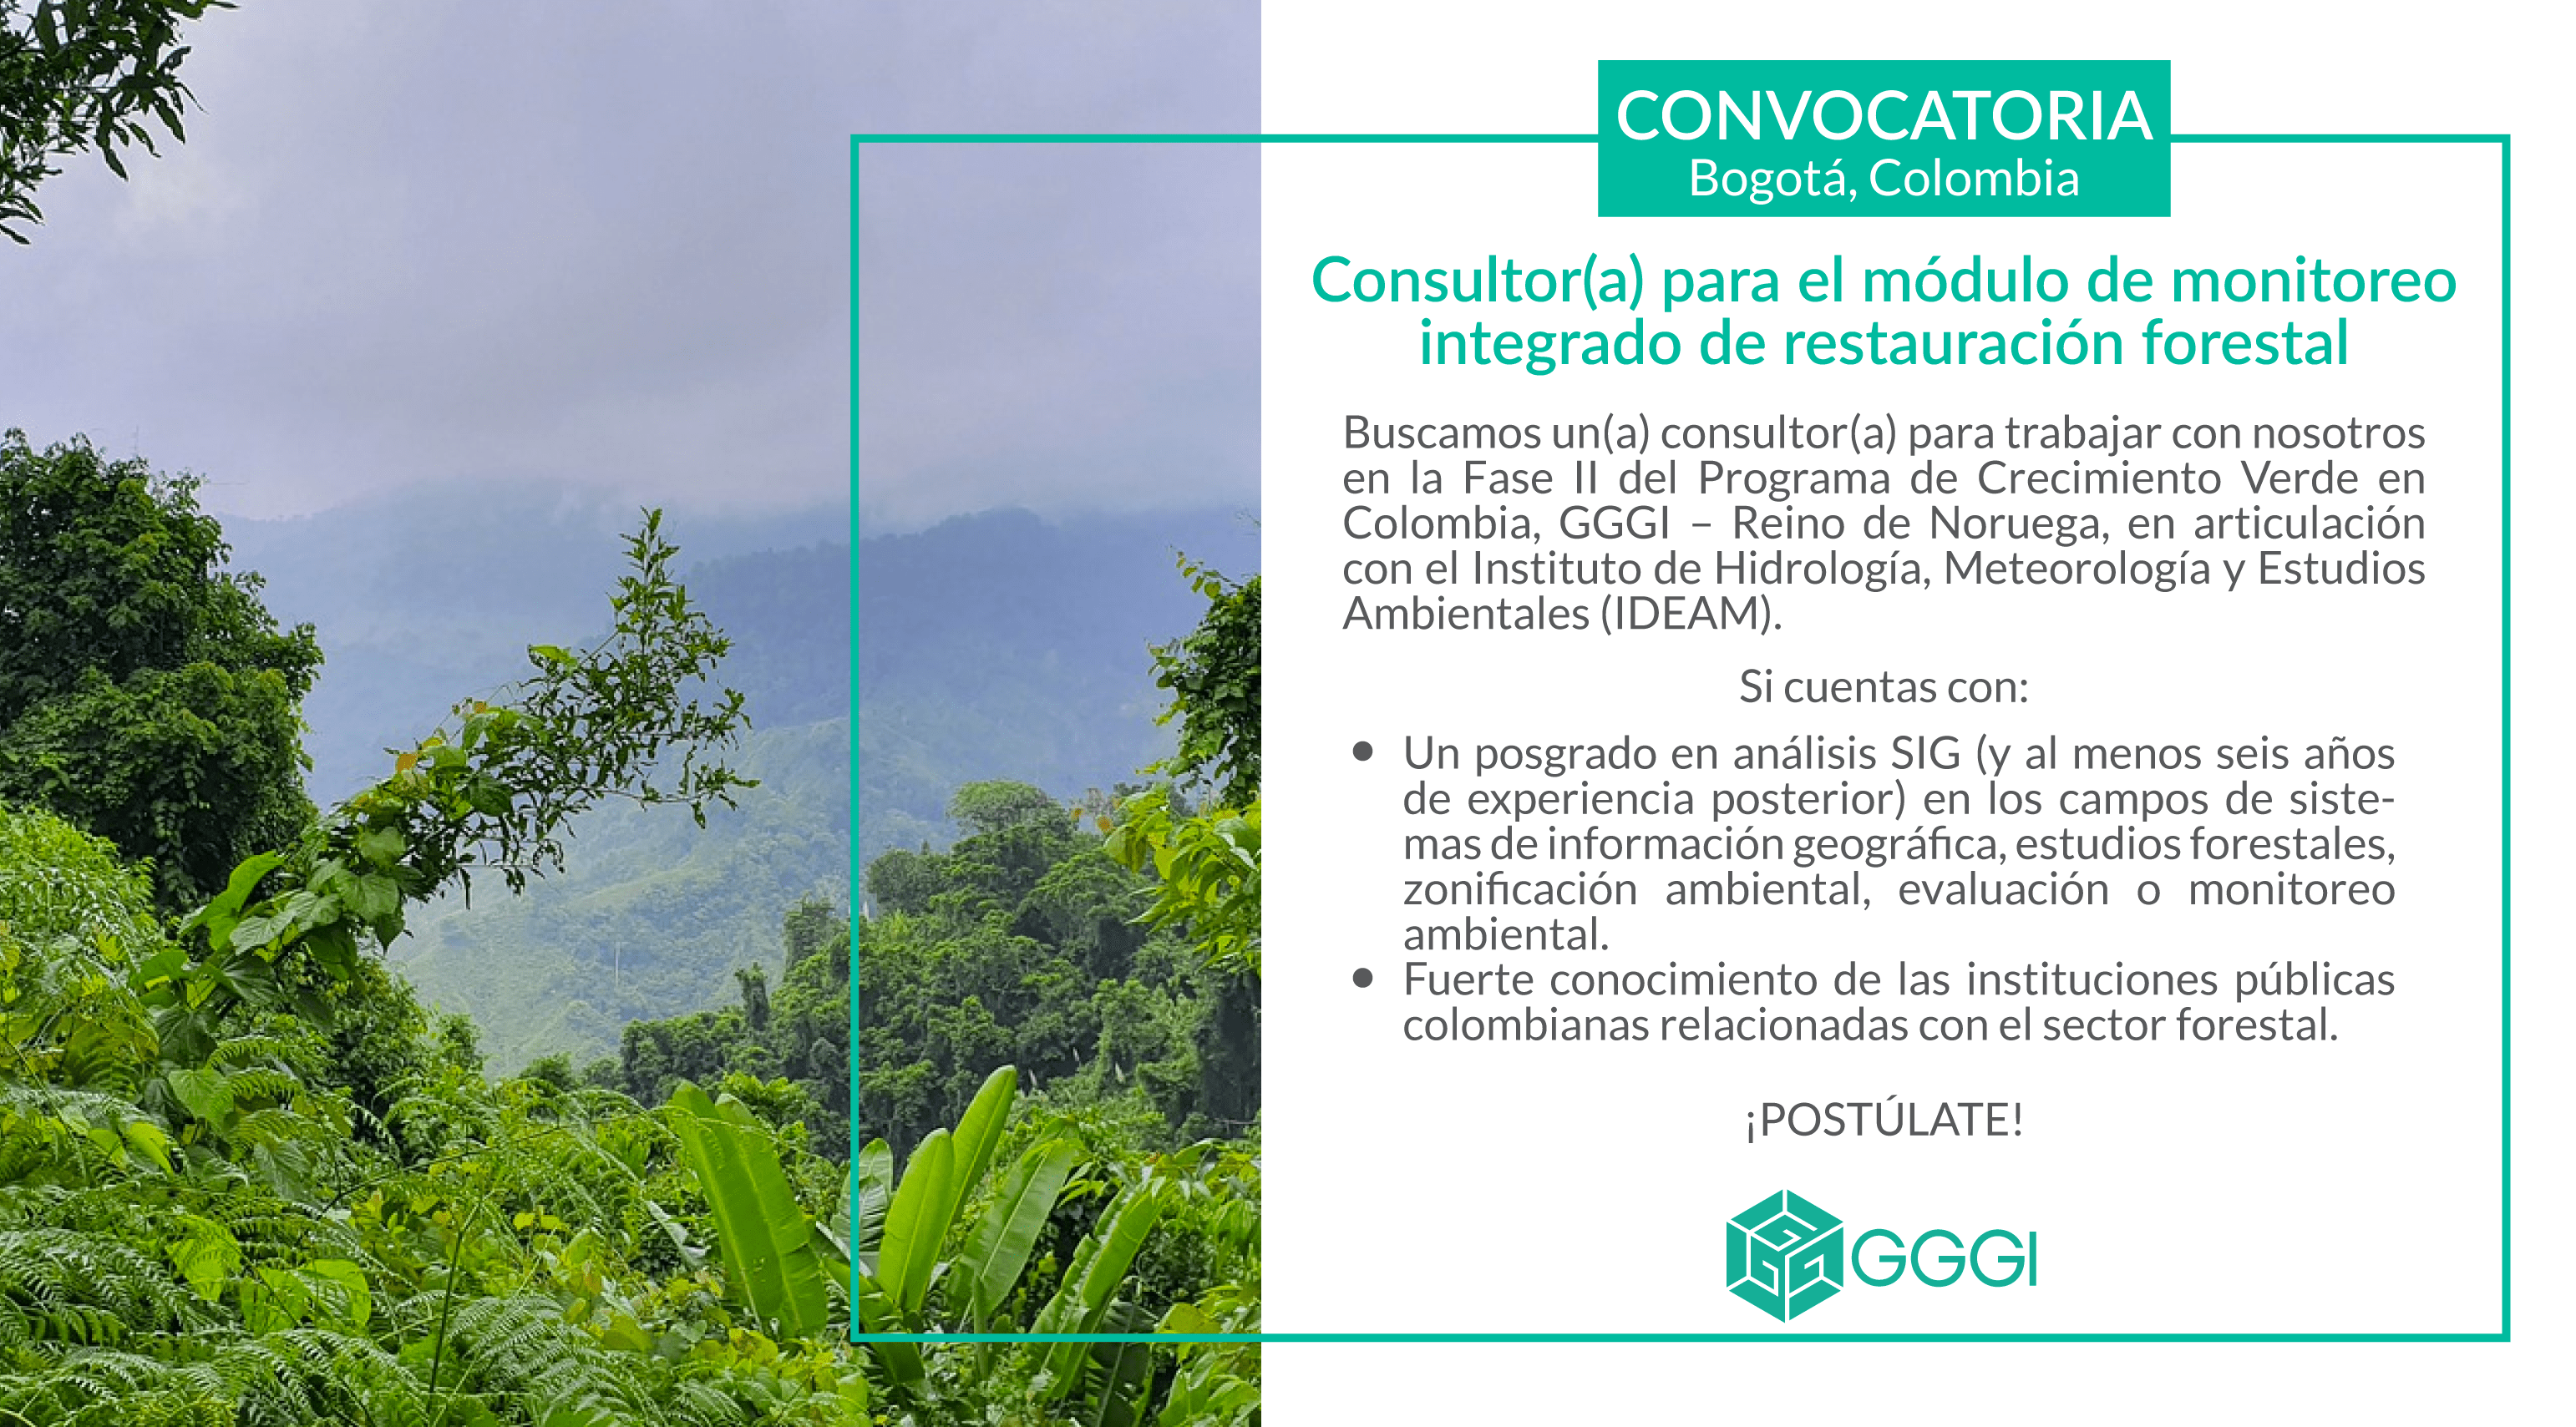 Integrated Forest Restoration Monitoring Module Consultant